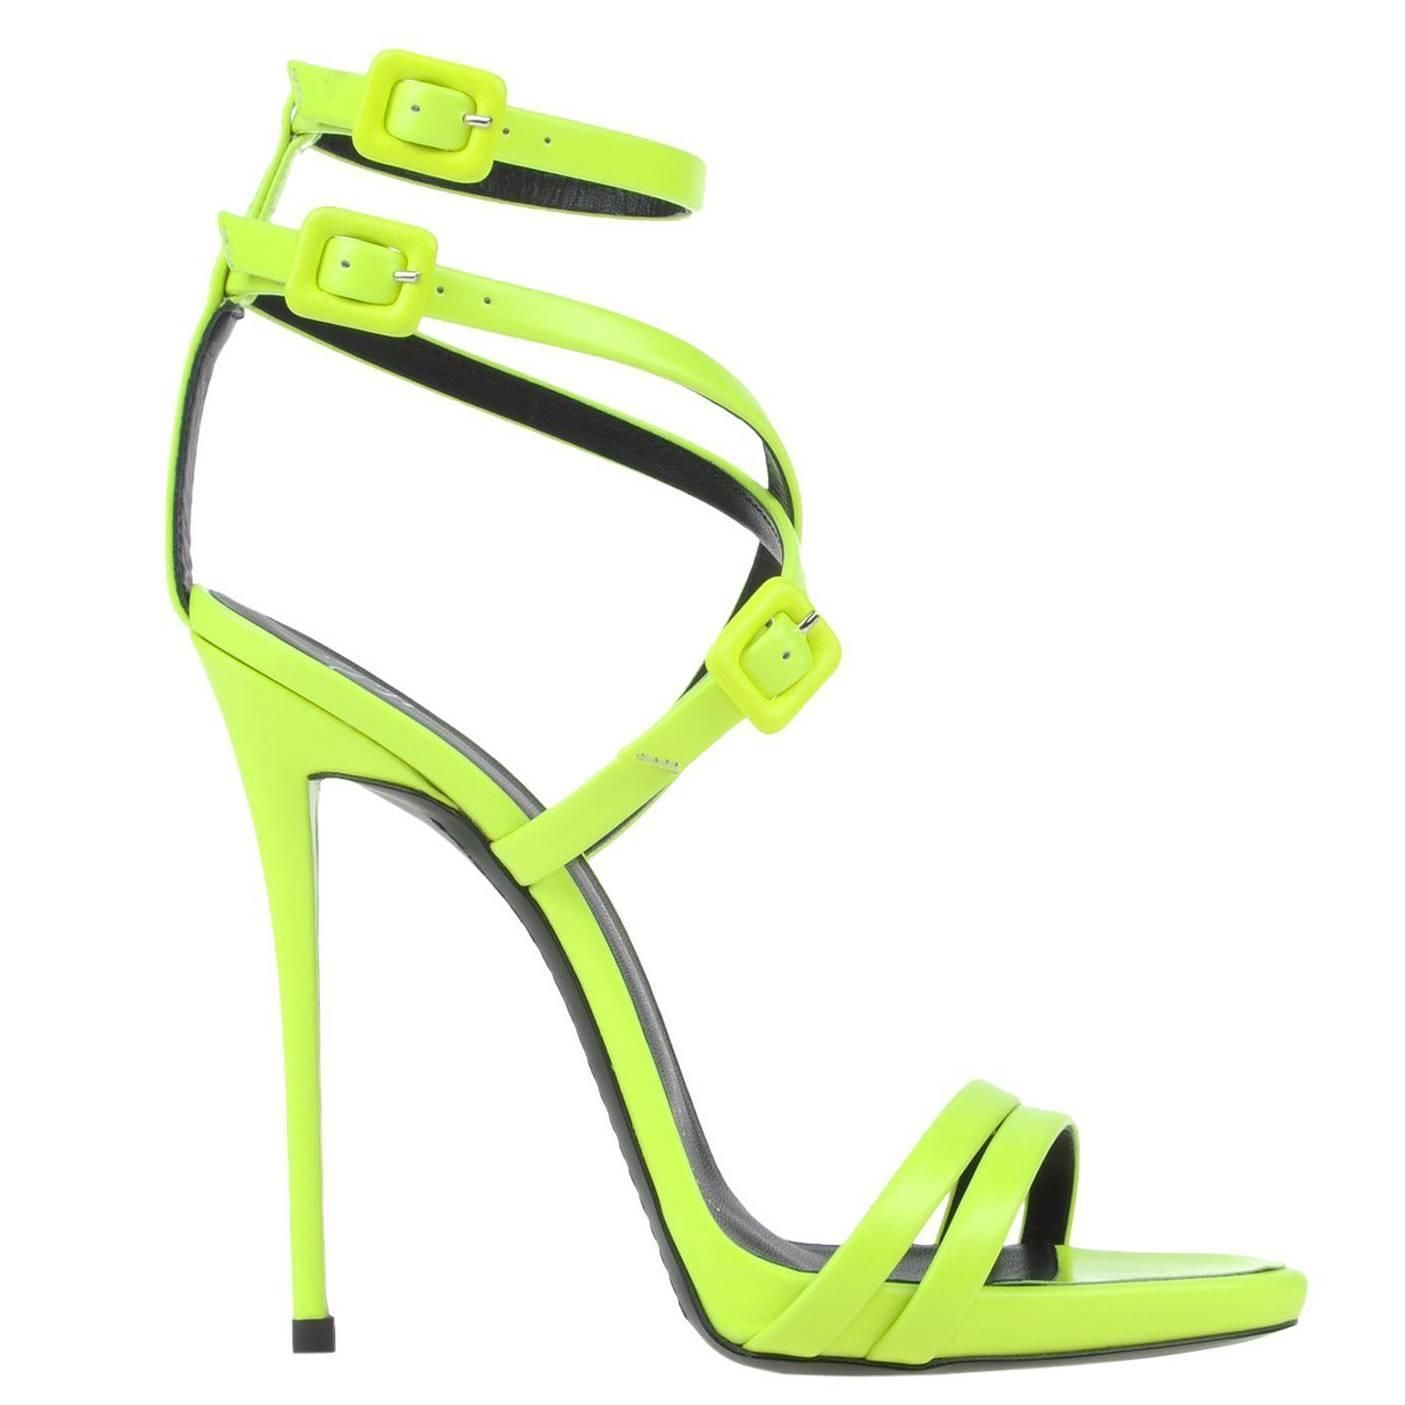 6ad67acbe98 Giuseppe Zanotti NEW SOLD OUT Neon Lime Green High Heels Strappy Sandals